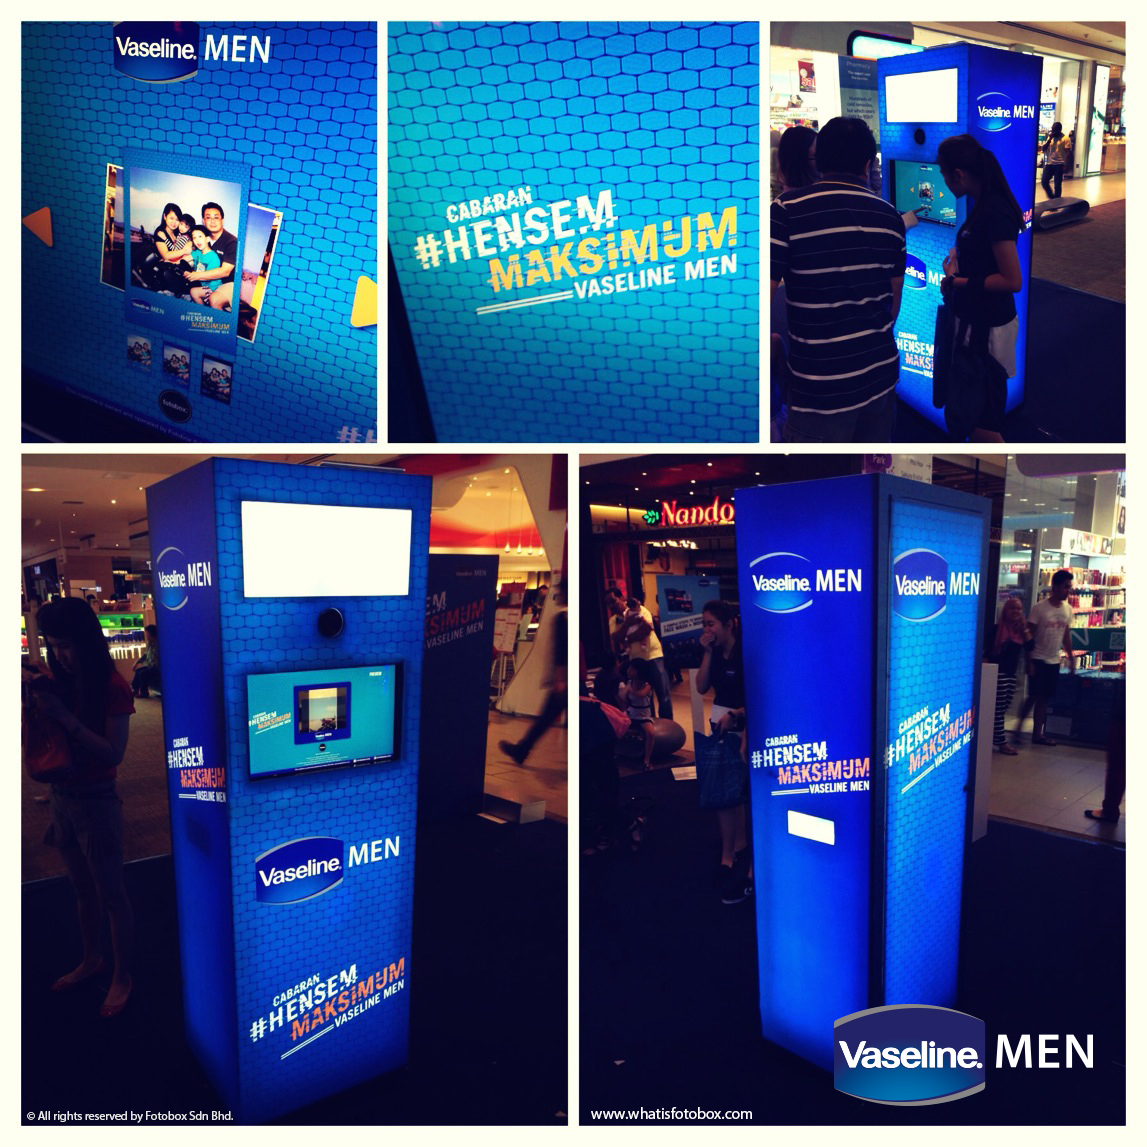 Vaseline Men Fotobox.jpg